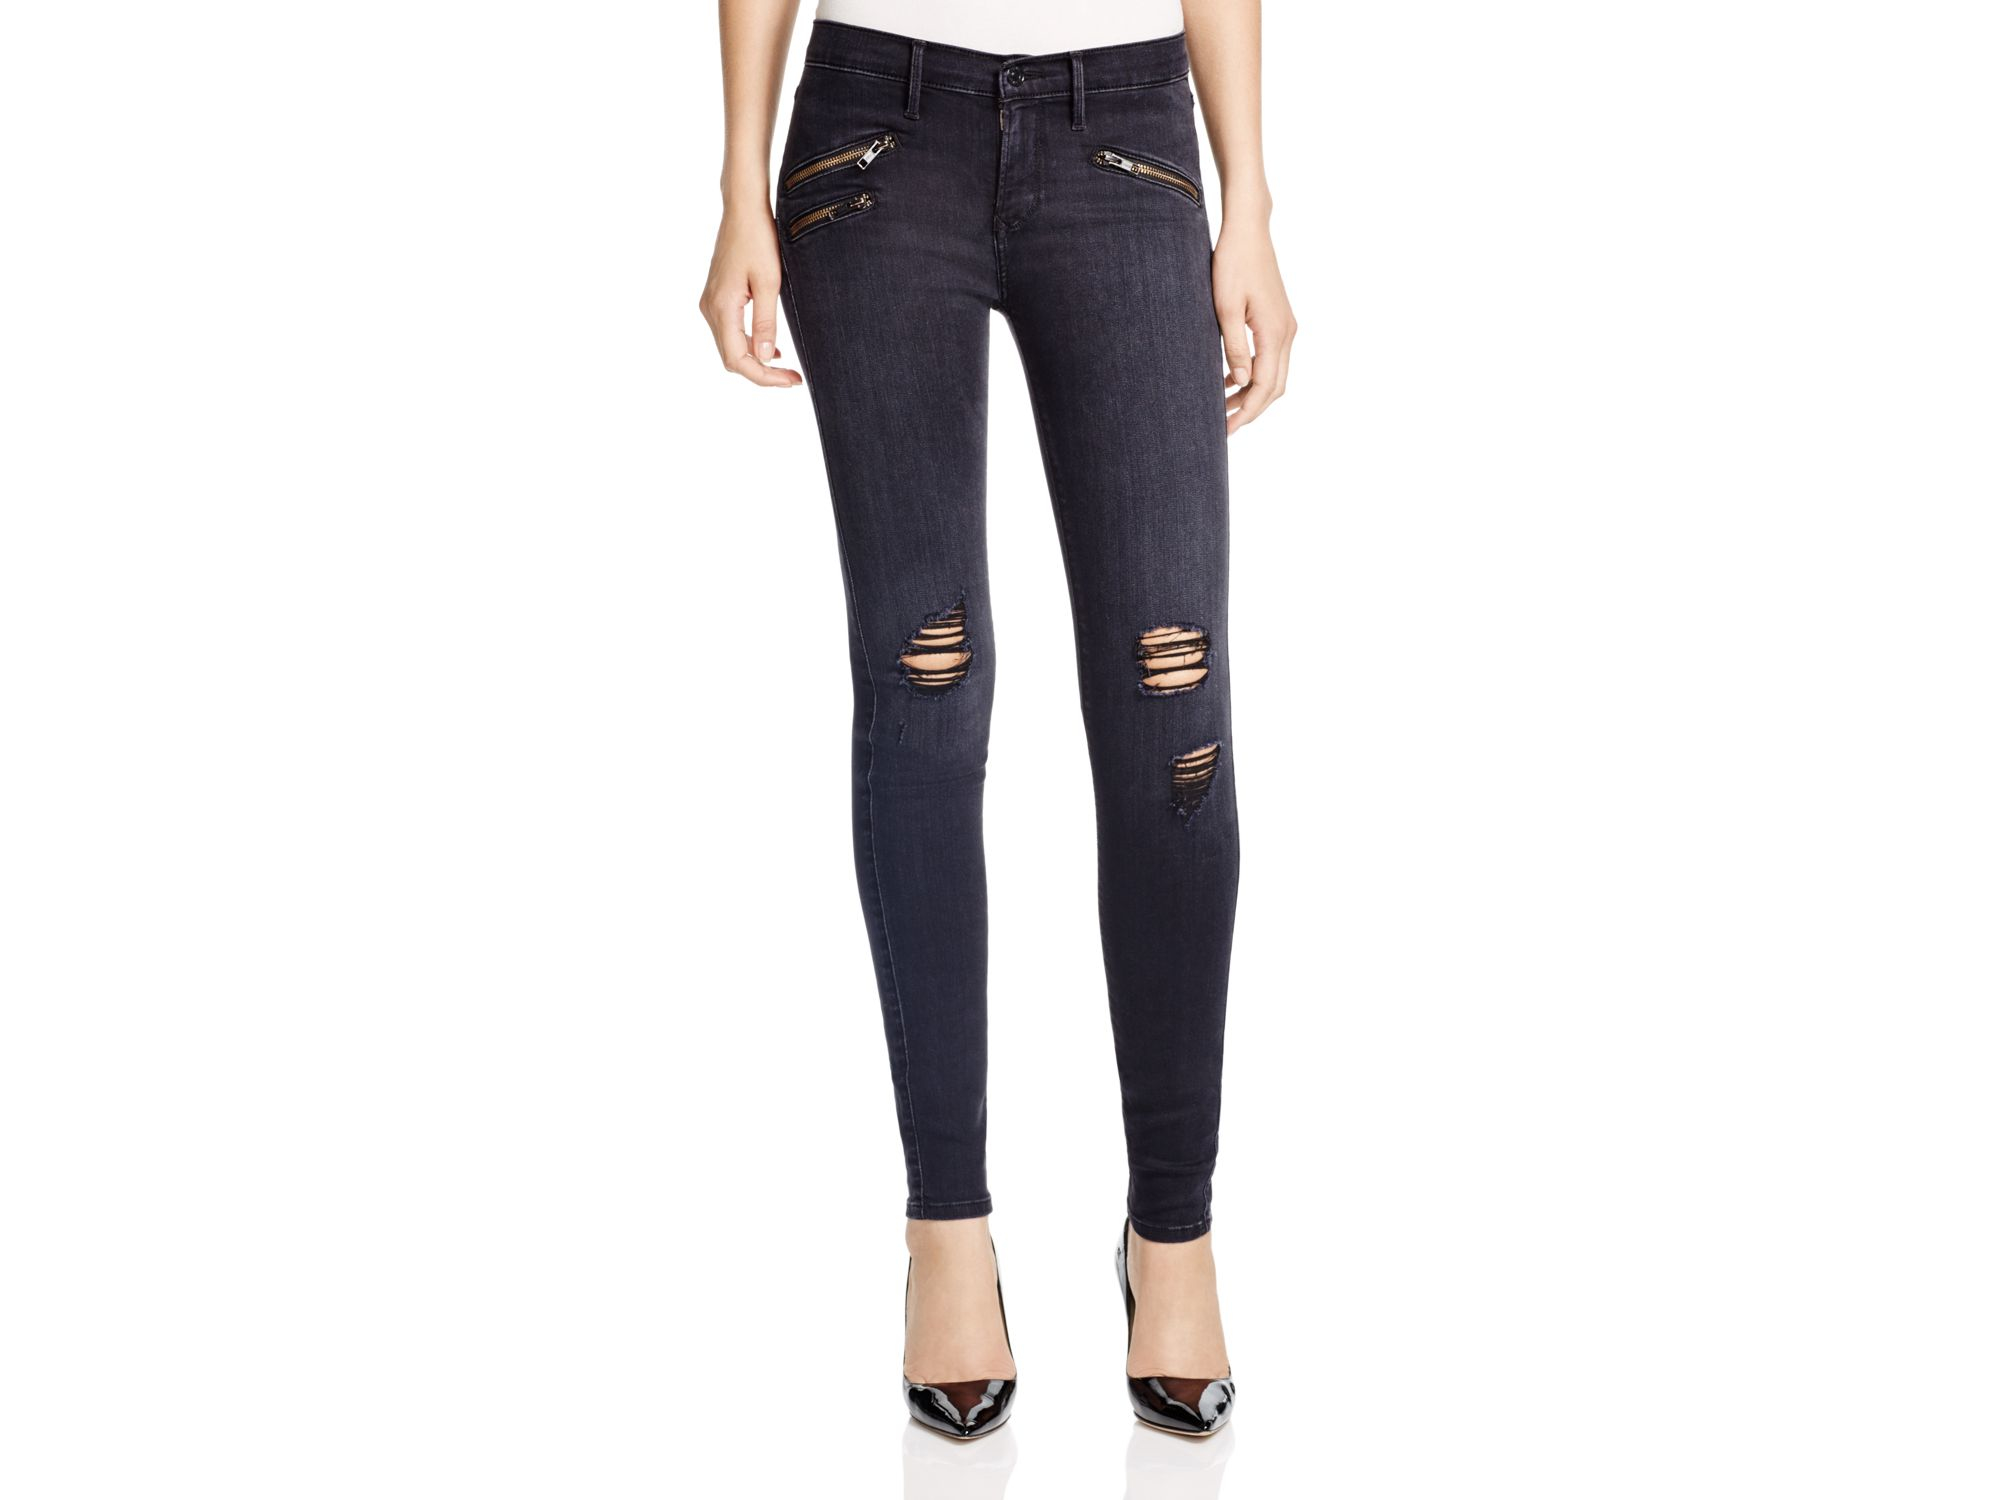 Black orchid Destructed Billie Zipper Skinny Jeans In Black Rock